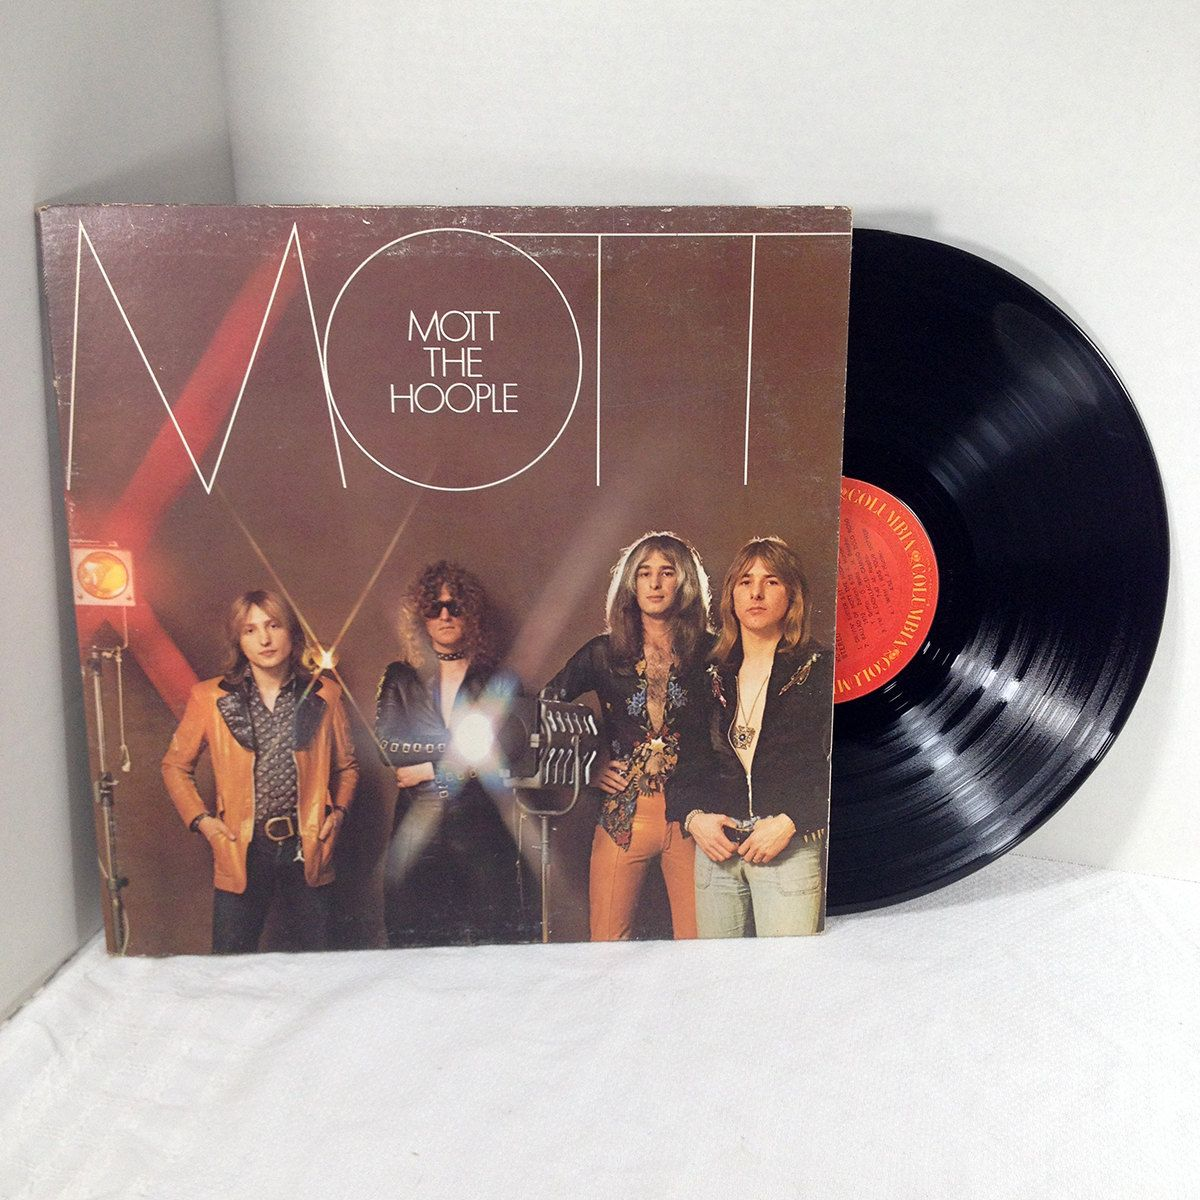 Mott The Hoople The Hoople Lp Vinyl Record Album By Thisvinyllife